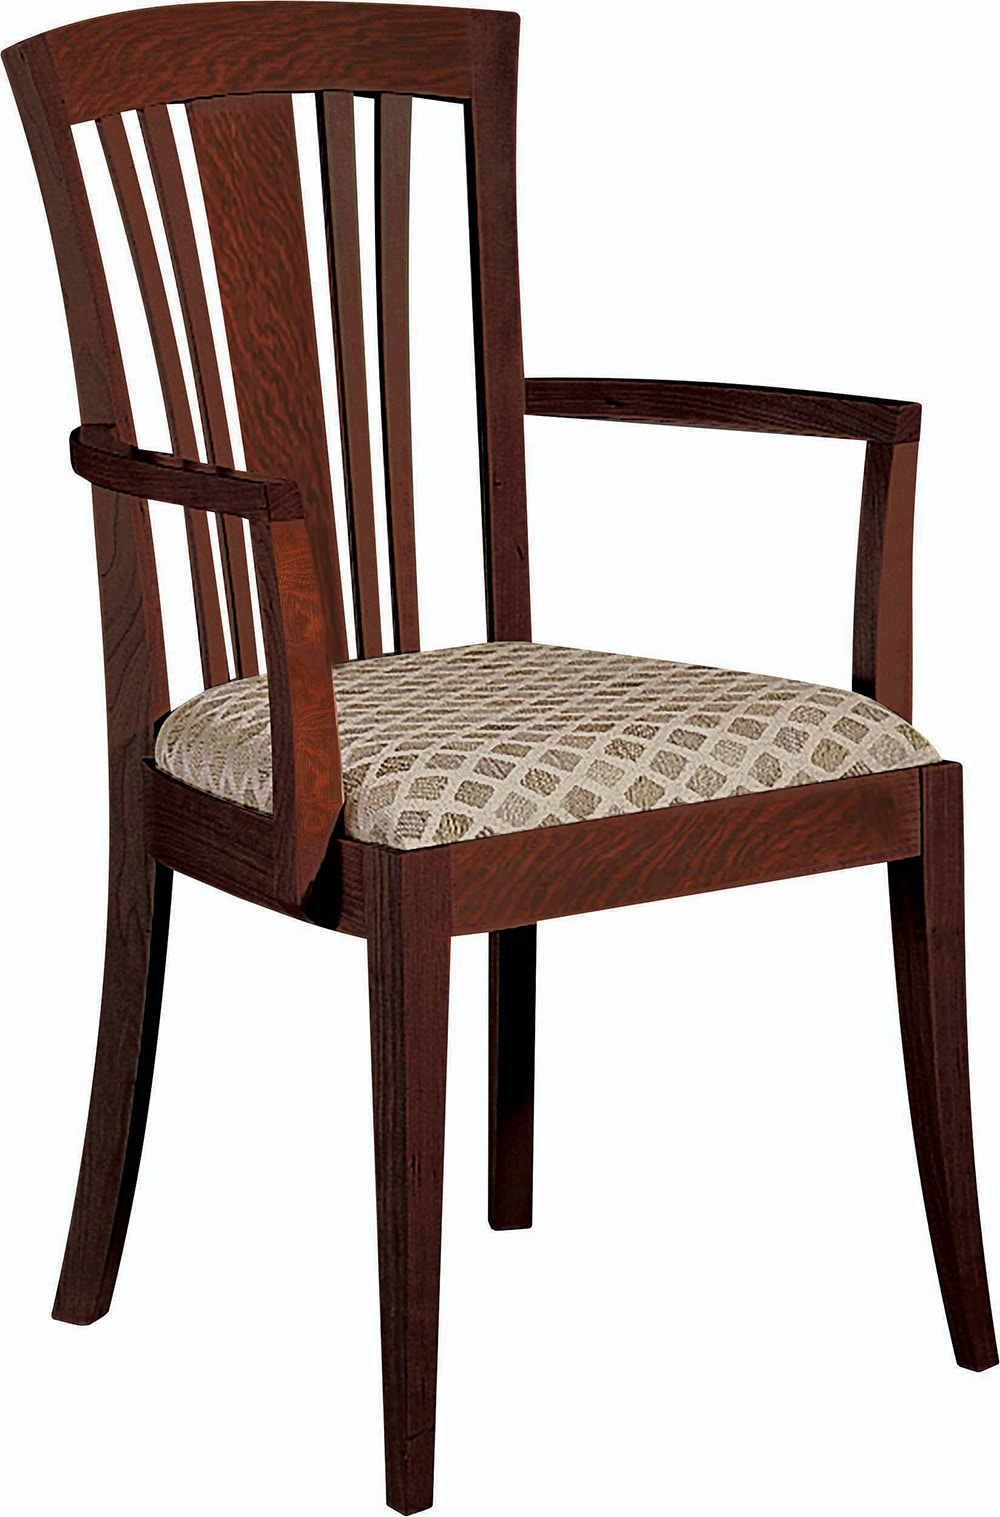 Stickley Dining Room Bayonne Arm Chair 7752-A - von Hemert ...